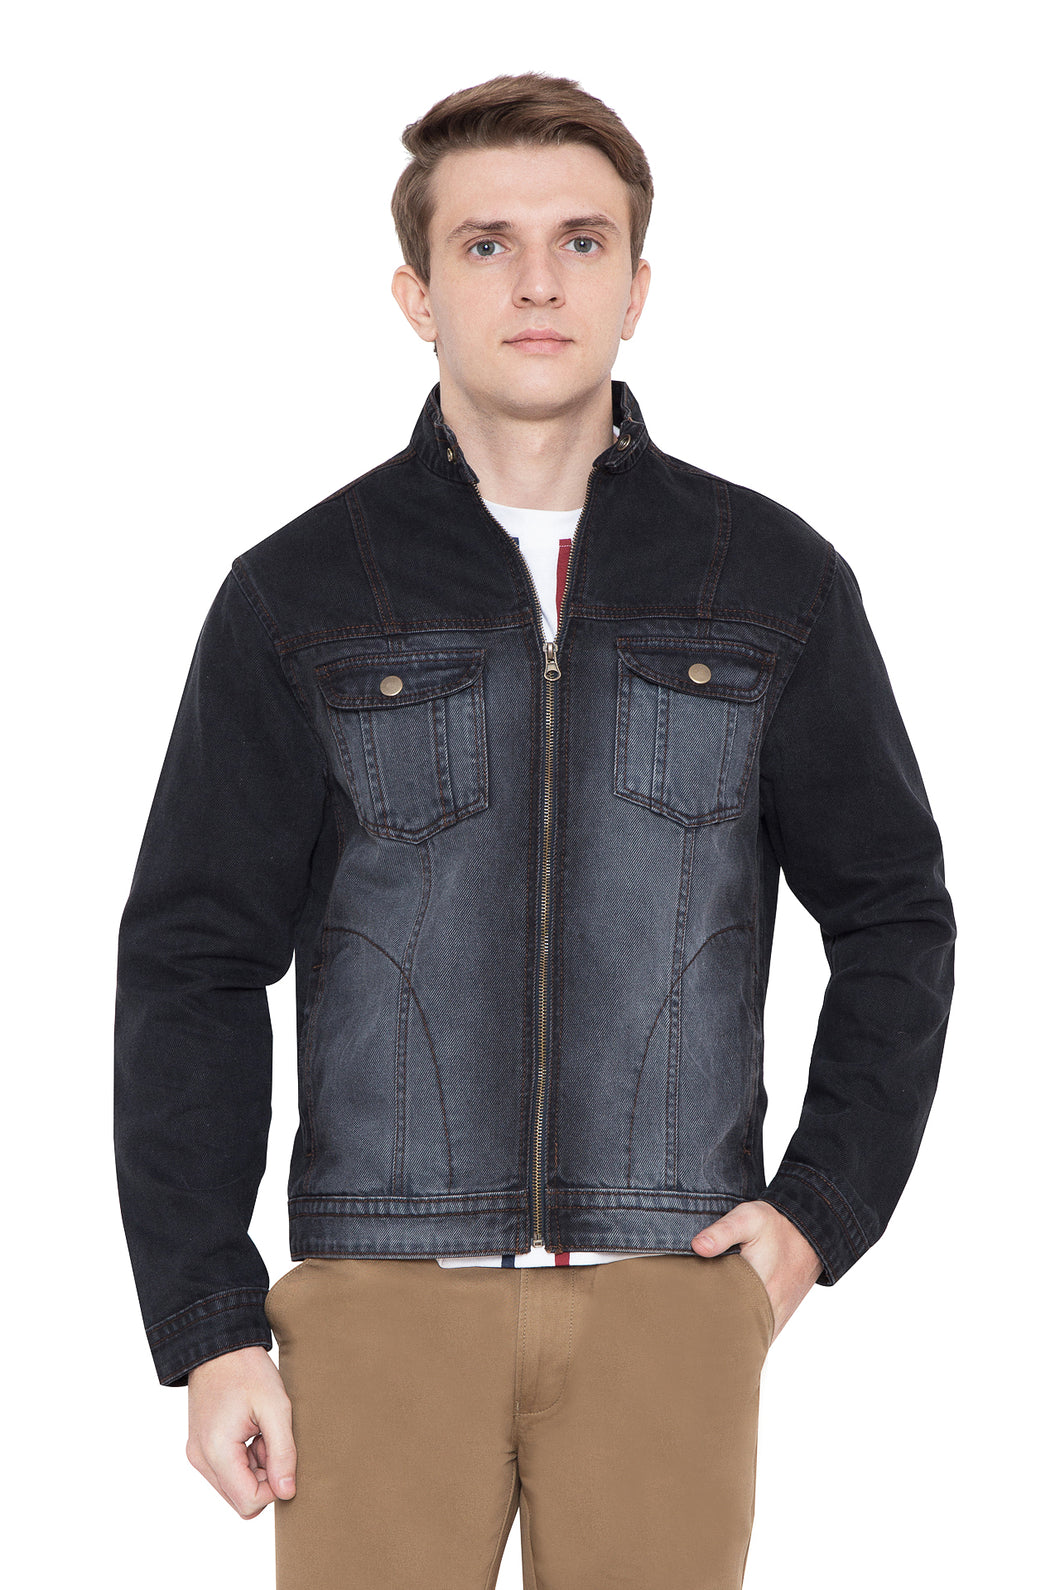 Krossstitch Full Sleeve Men's Denim Grey Jacket with Zip Clouser